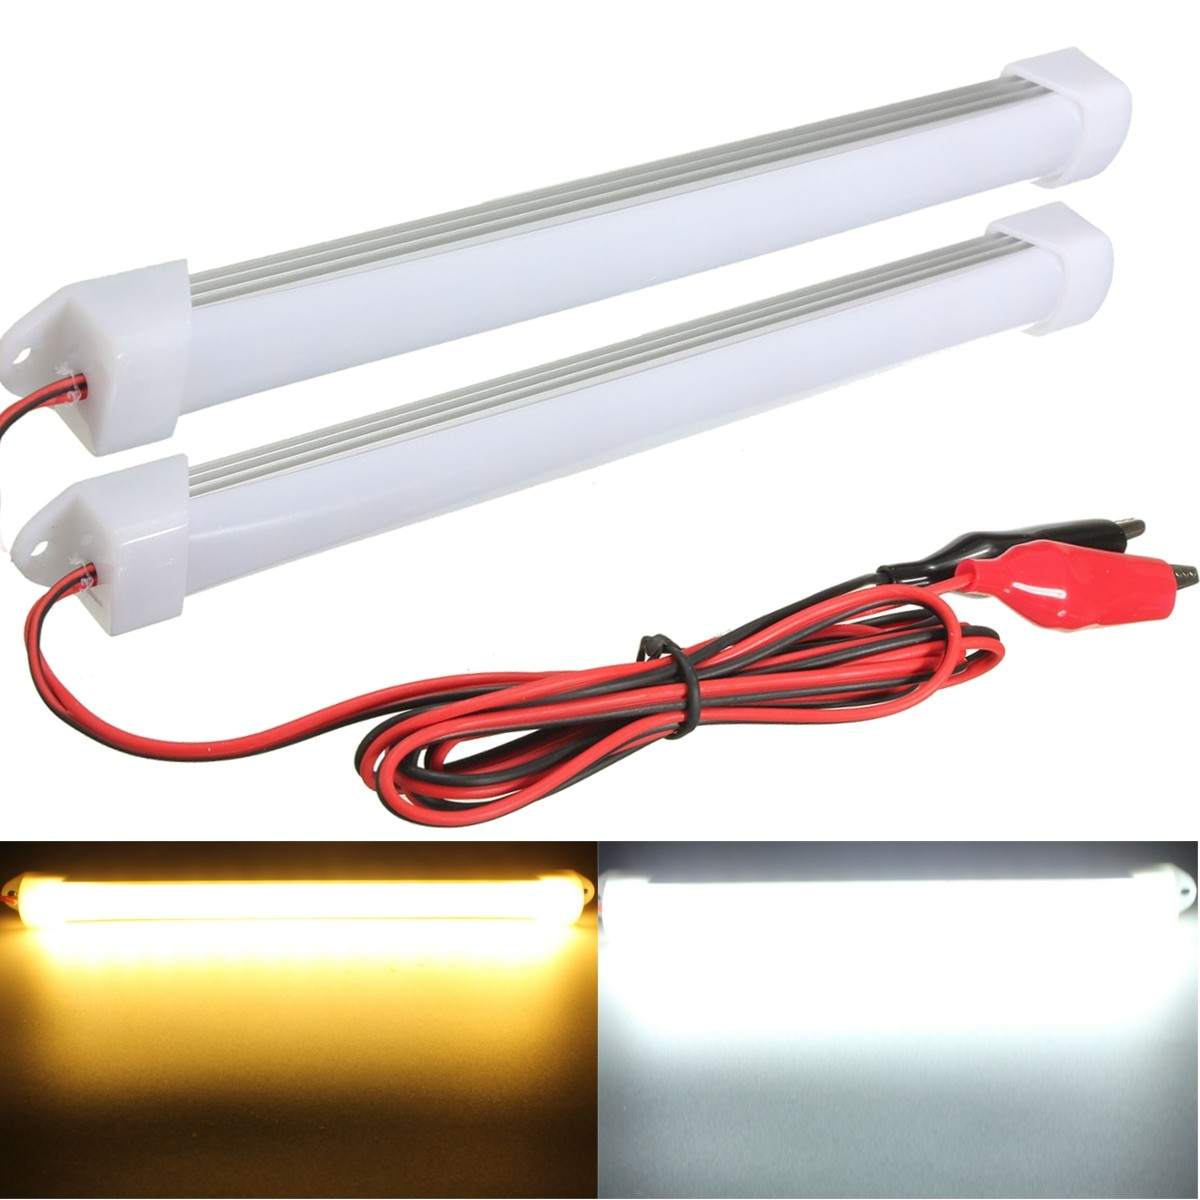 2015 new 2pcs 12v led car interior light bar tube strip lamp van boat caravan motorhome in car. Black Bedroom Furniture Sets. Home Design Ideas